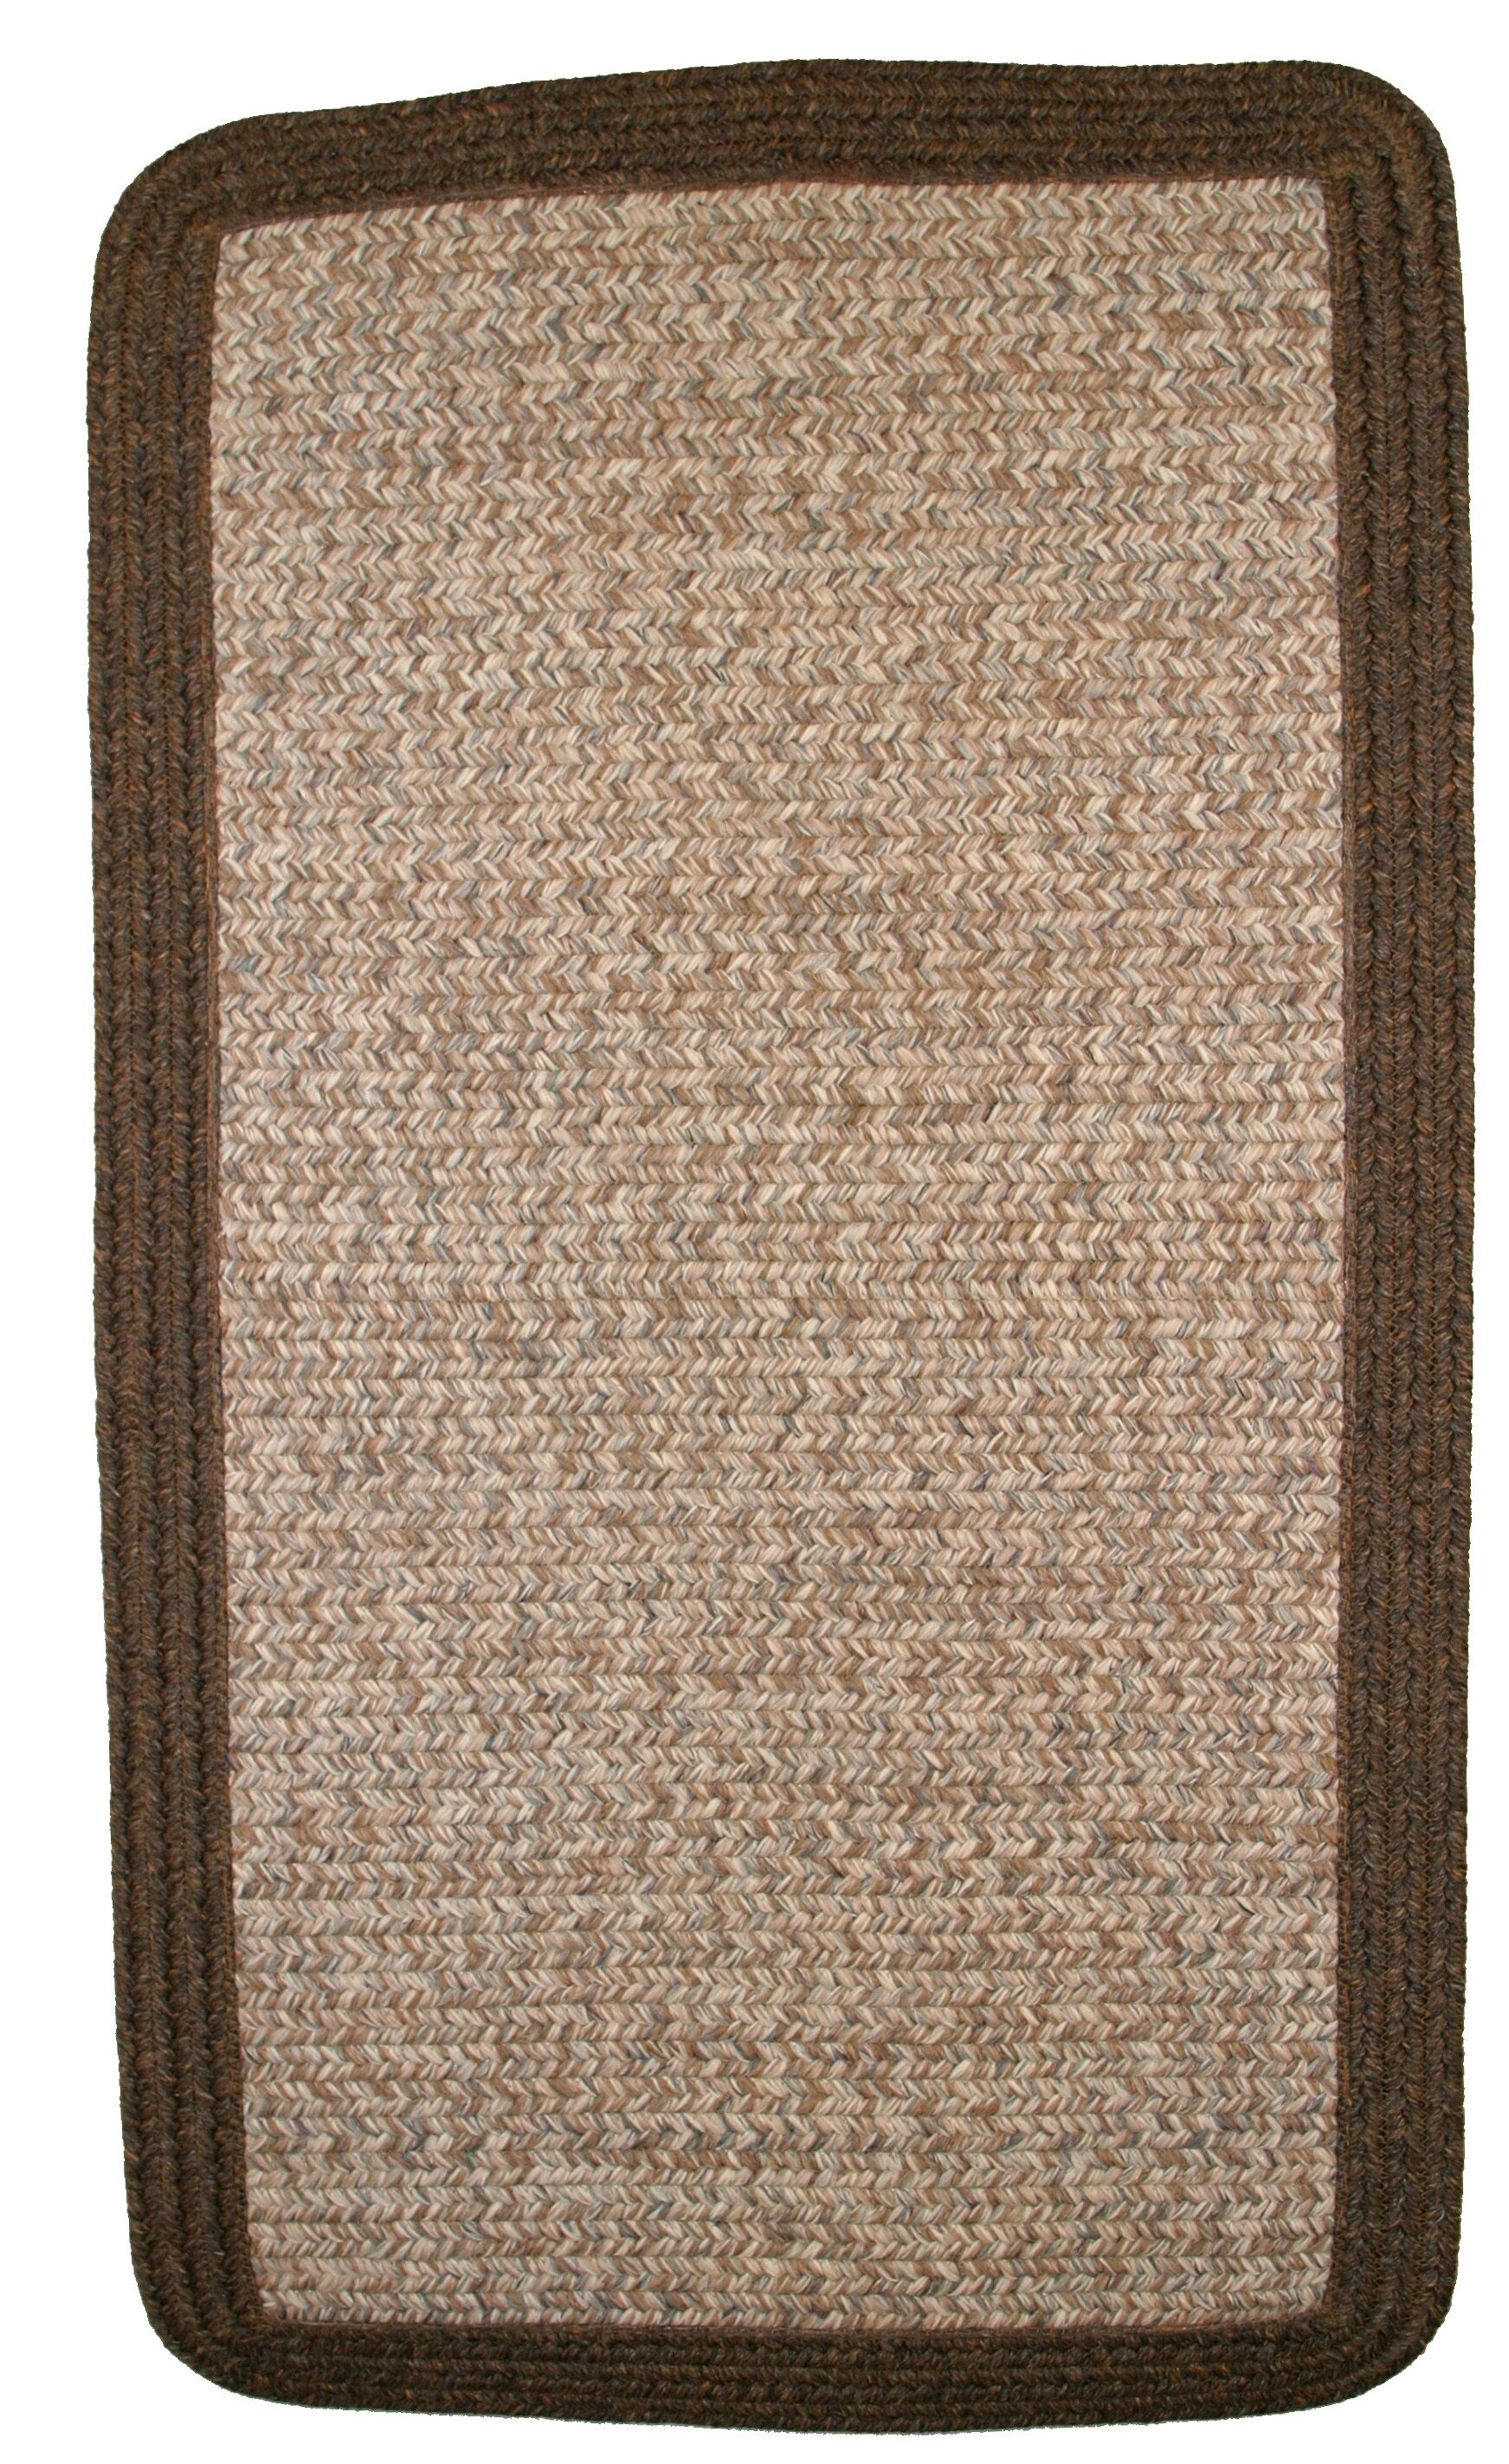 Town Crier Brown Heather with Brown Solids Indoor/Outdoor Rug Rug Size: Rectangle 3' x 5'